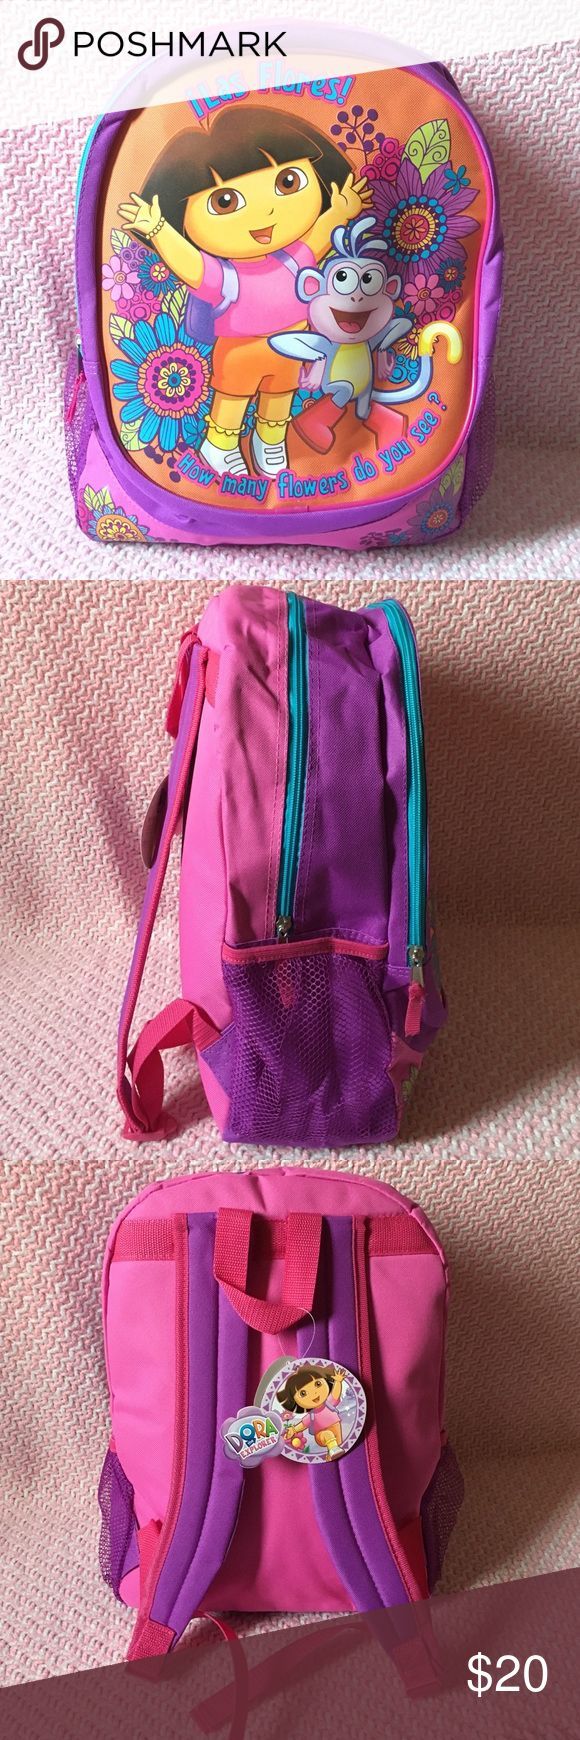 "Dora The Explorer Backpack NEW Dora backpacks, featuring Dora and Boots, says ""Las Flores"" ""How many flowers do you see?"", two compartment backpack, two holders for water bottles or cups, adjustable straps, multi color backpack. 16 inches long 6 inches wide Nickelodeon Accessories Bags"